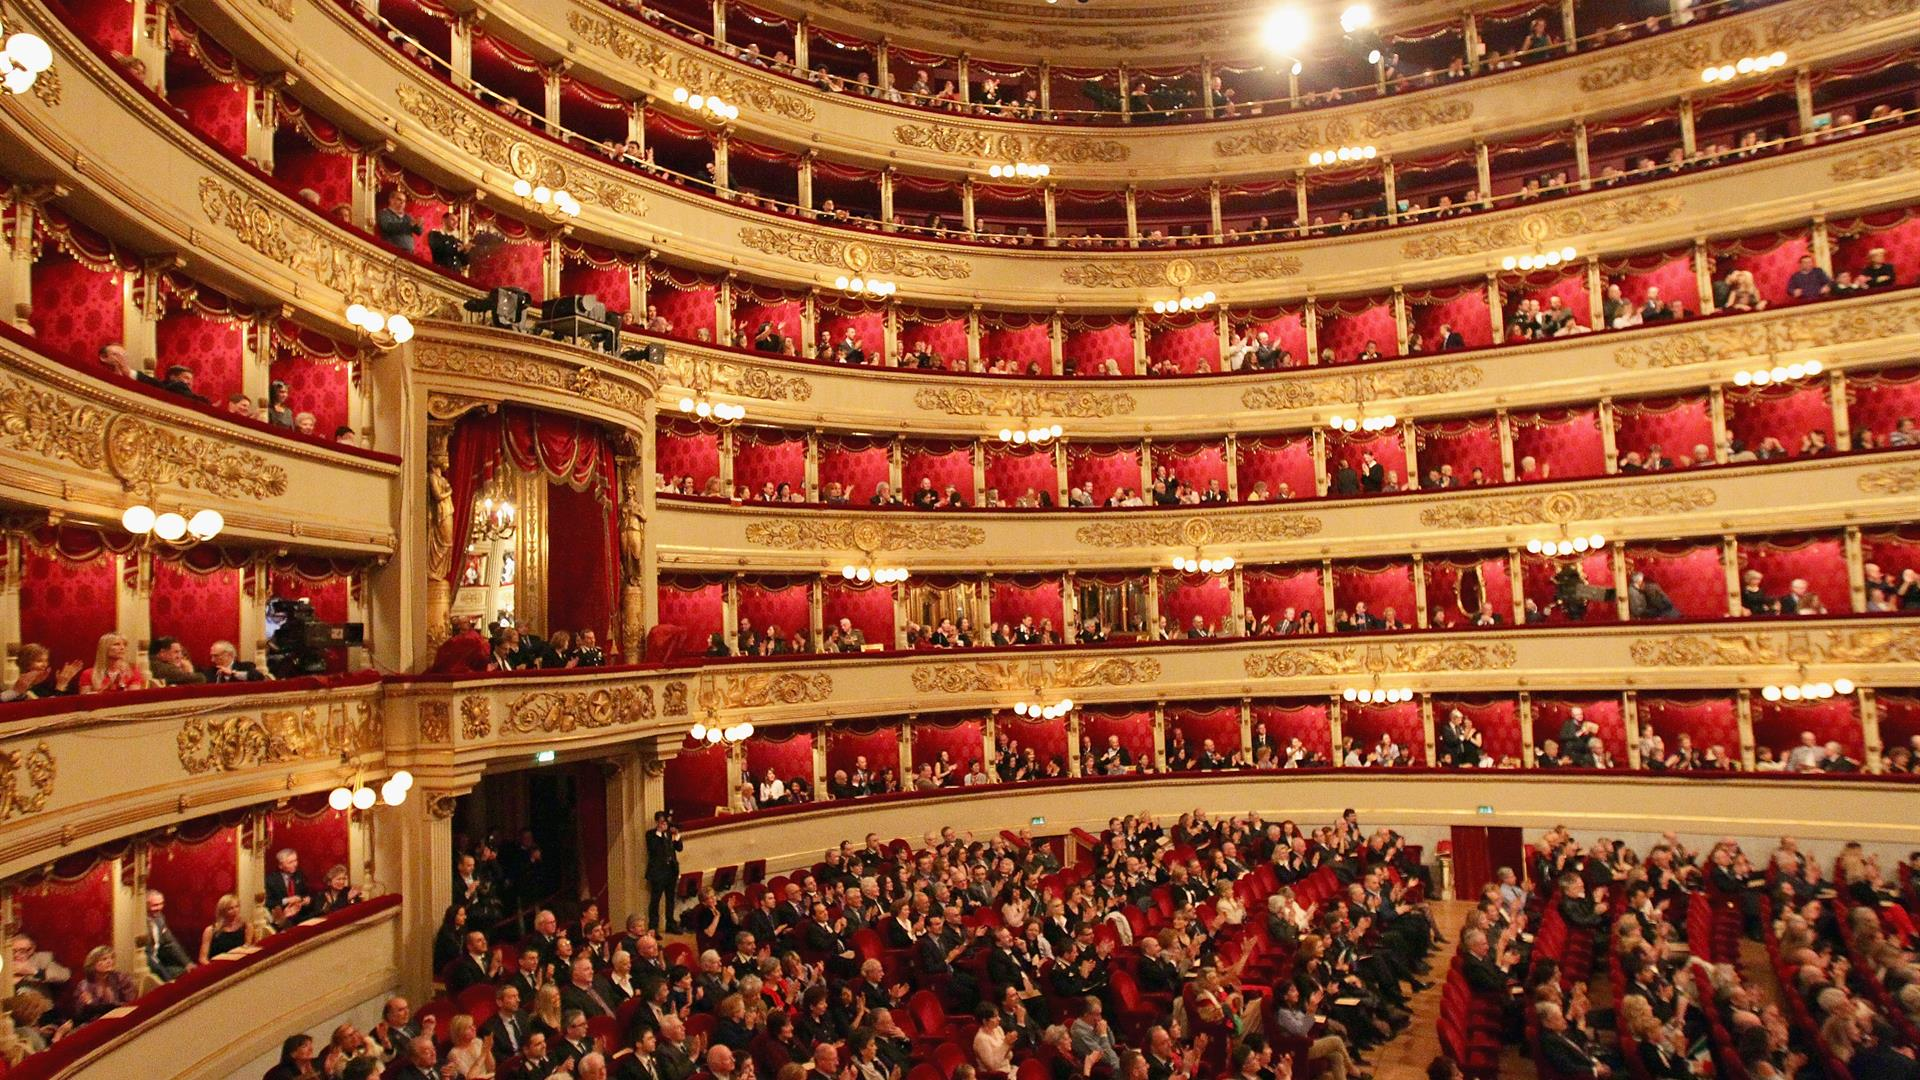 Teatro Alla Scala Vittorio Zunino Celotto:Getty Images